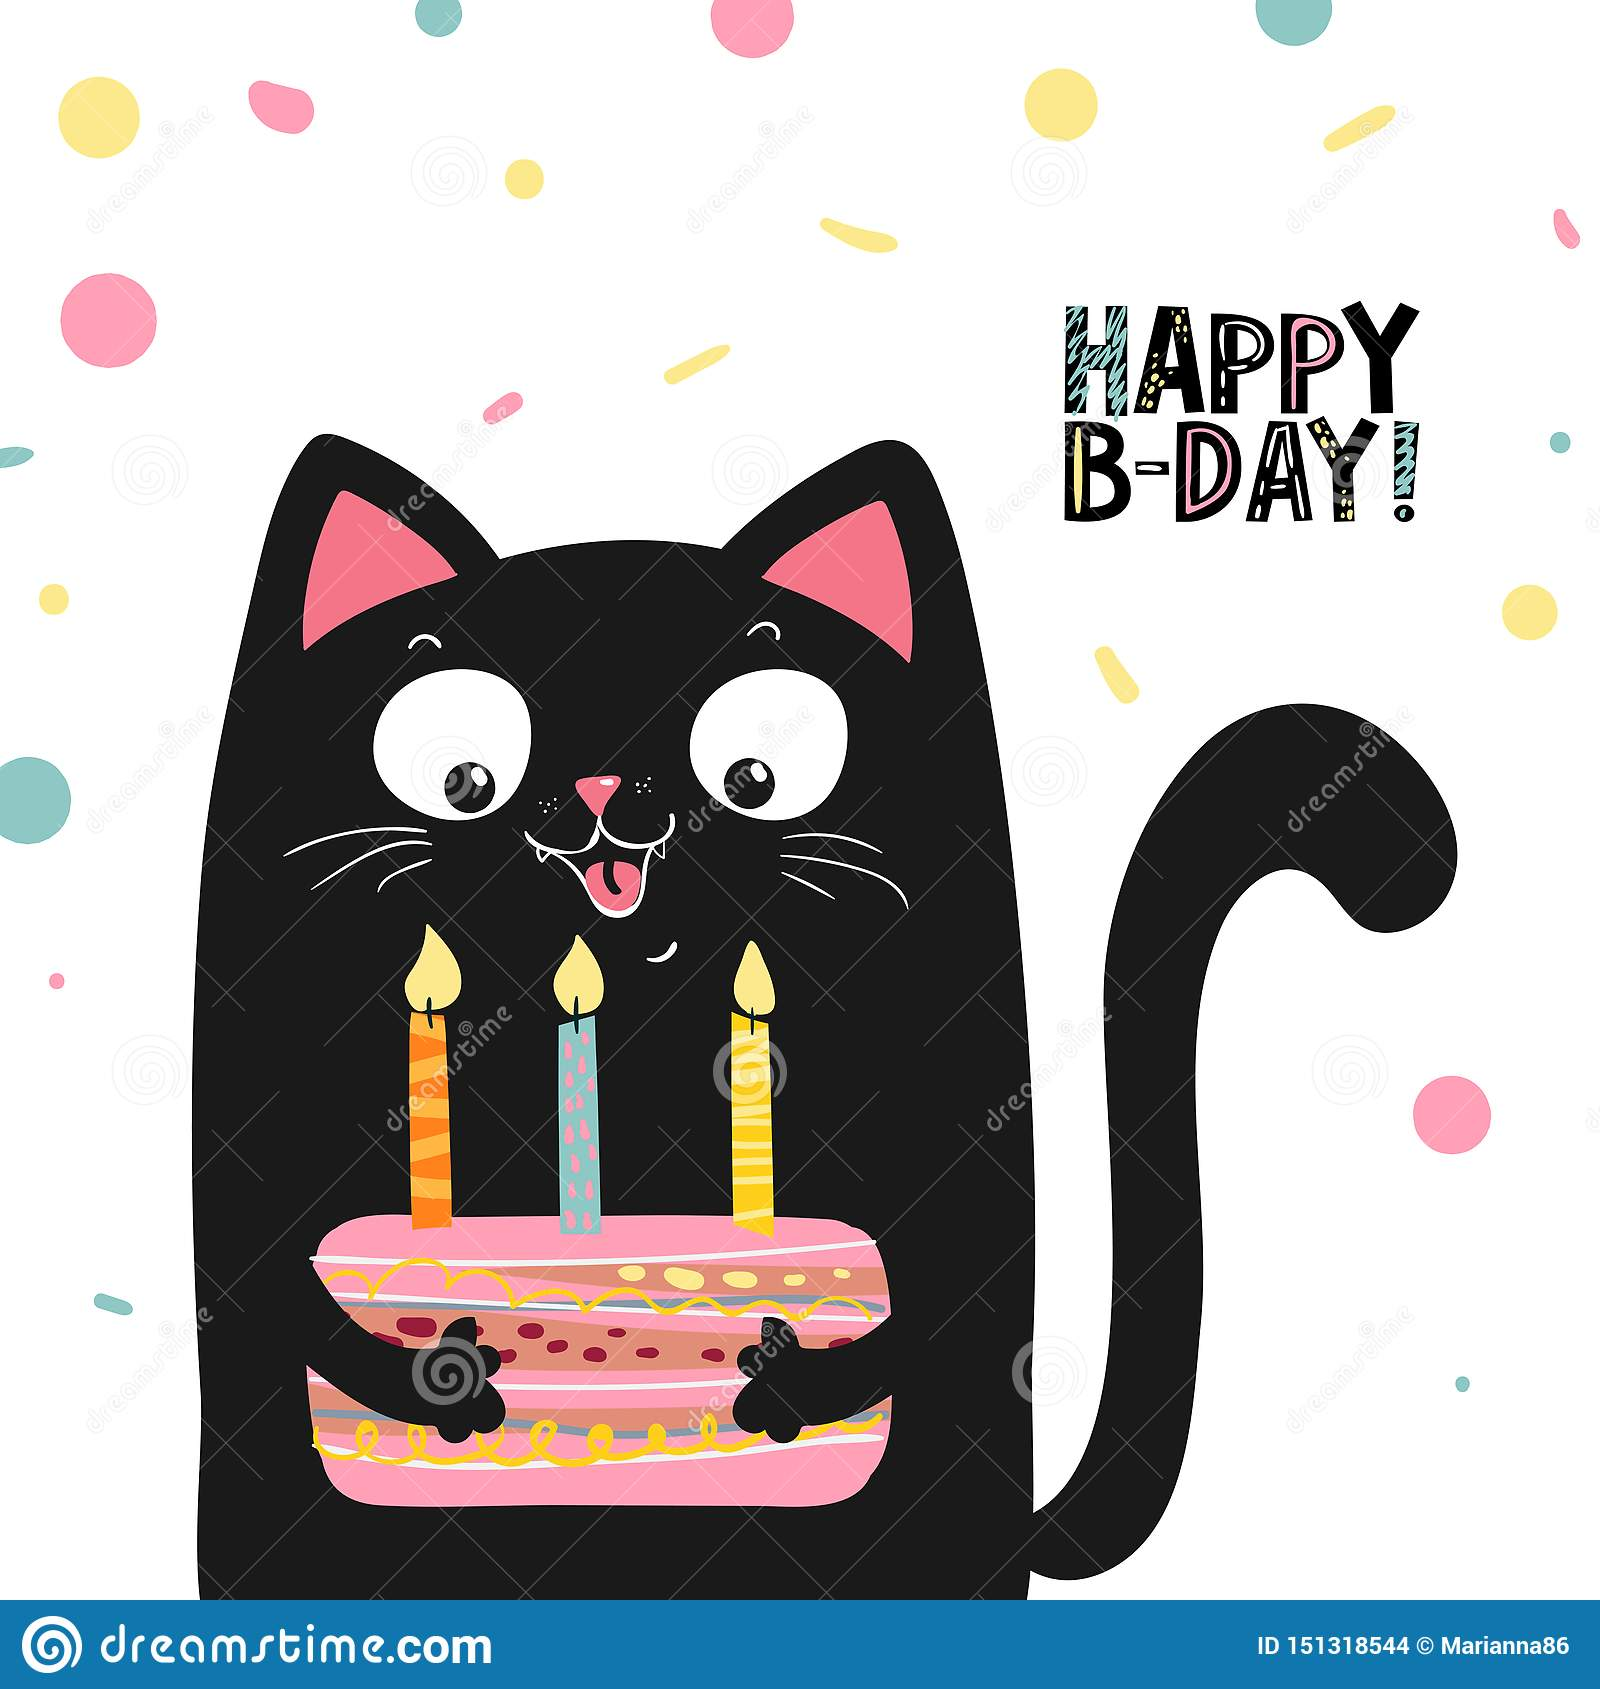 Happy Black Cat With Cake And Lettering Happy Birthday Vector Illustration Eps 10 Stock Vector Illustration Of Baby Cartoon 151318544